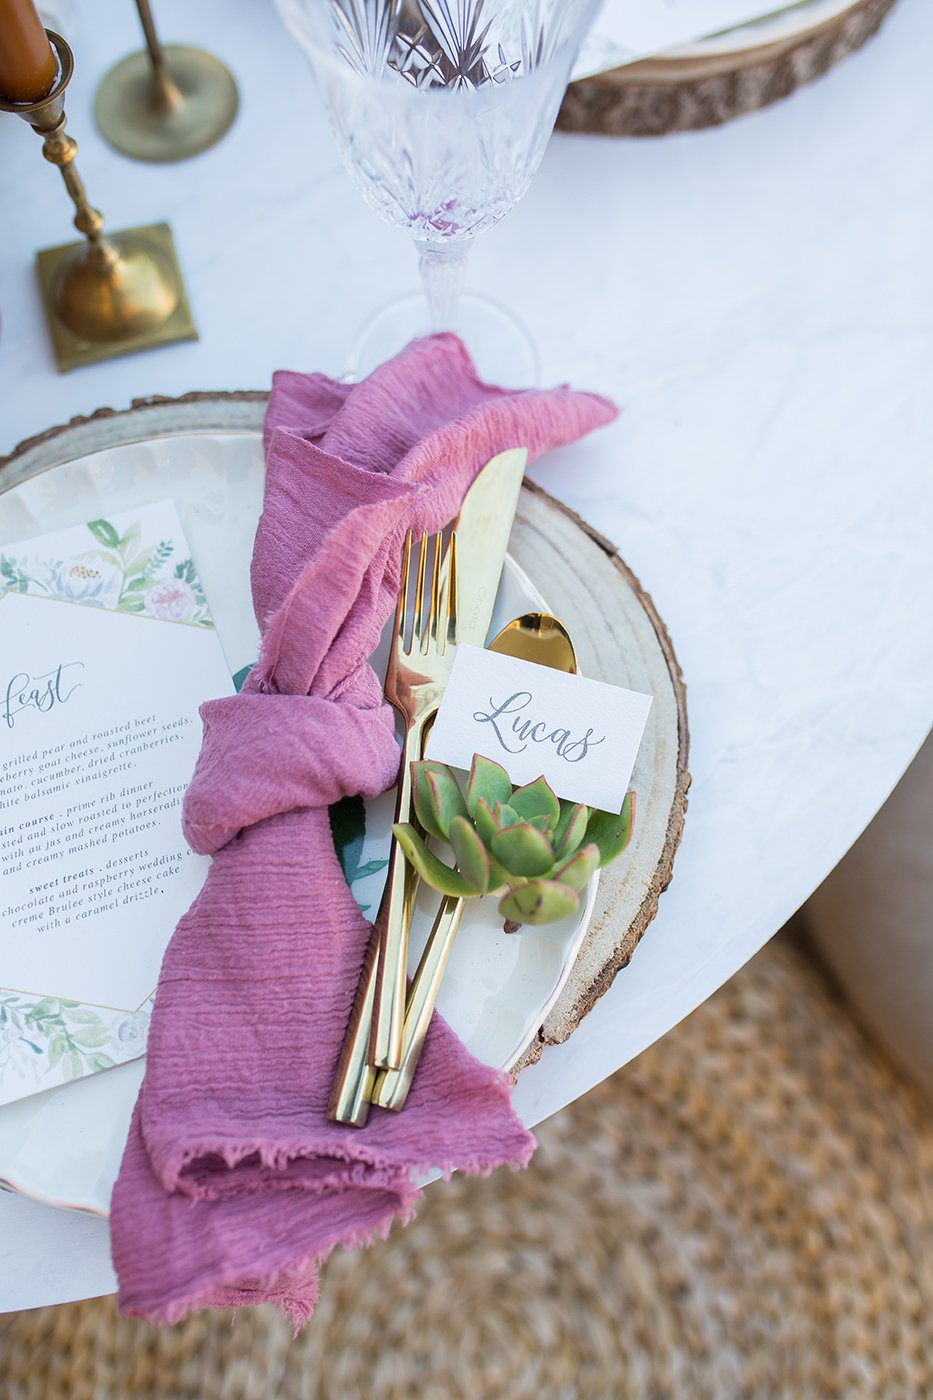 CarstenTicePhotography_Lot8-Boho-Wedding-Reception-Placecard-by-Sam-Allen-Creates-in-Succulent